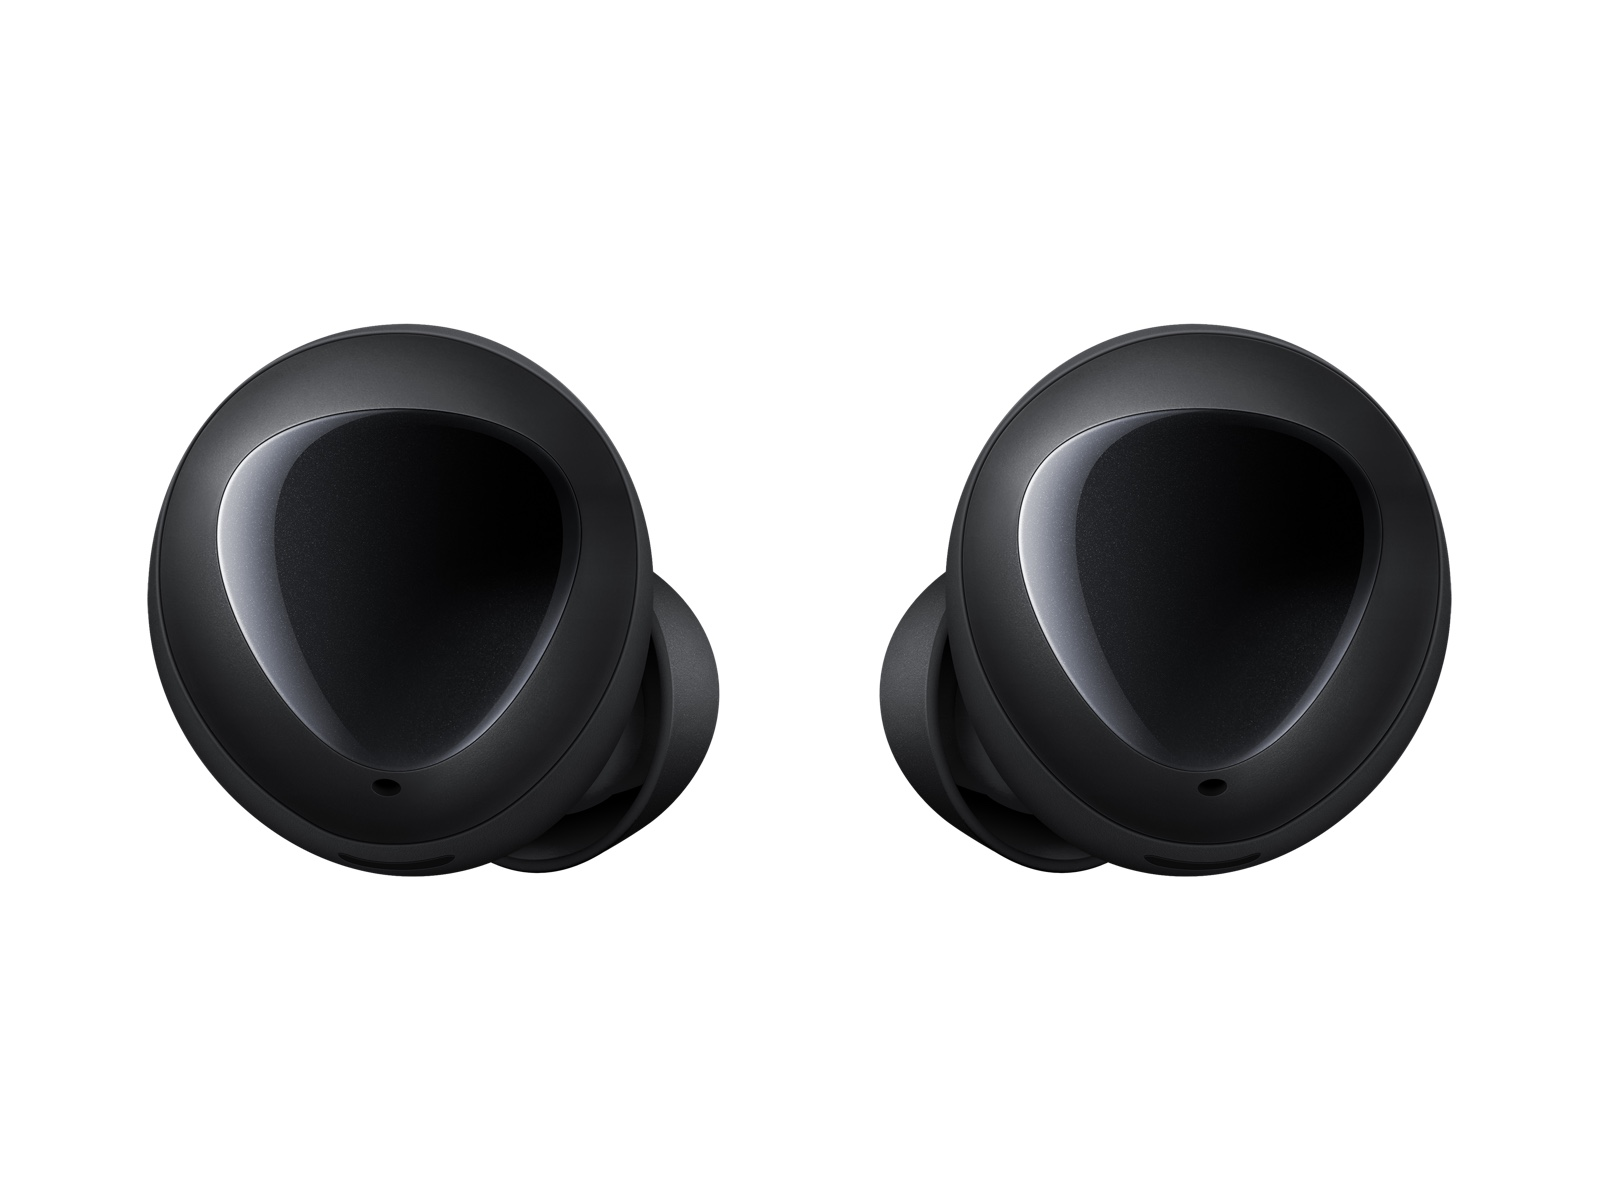 Galaxy Buds, True Wireless Earbuds, Black (Wireless Charging Case Included)